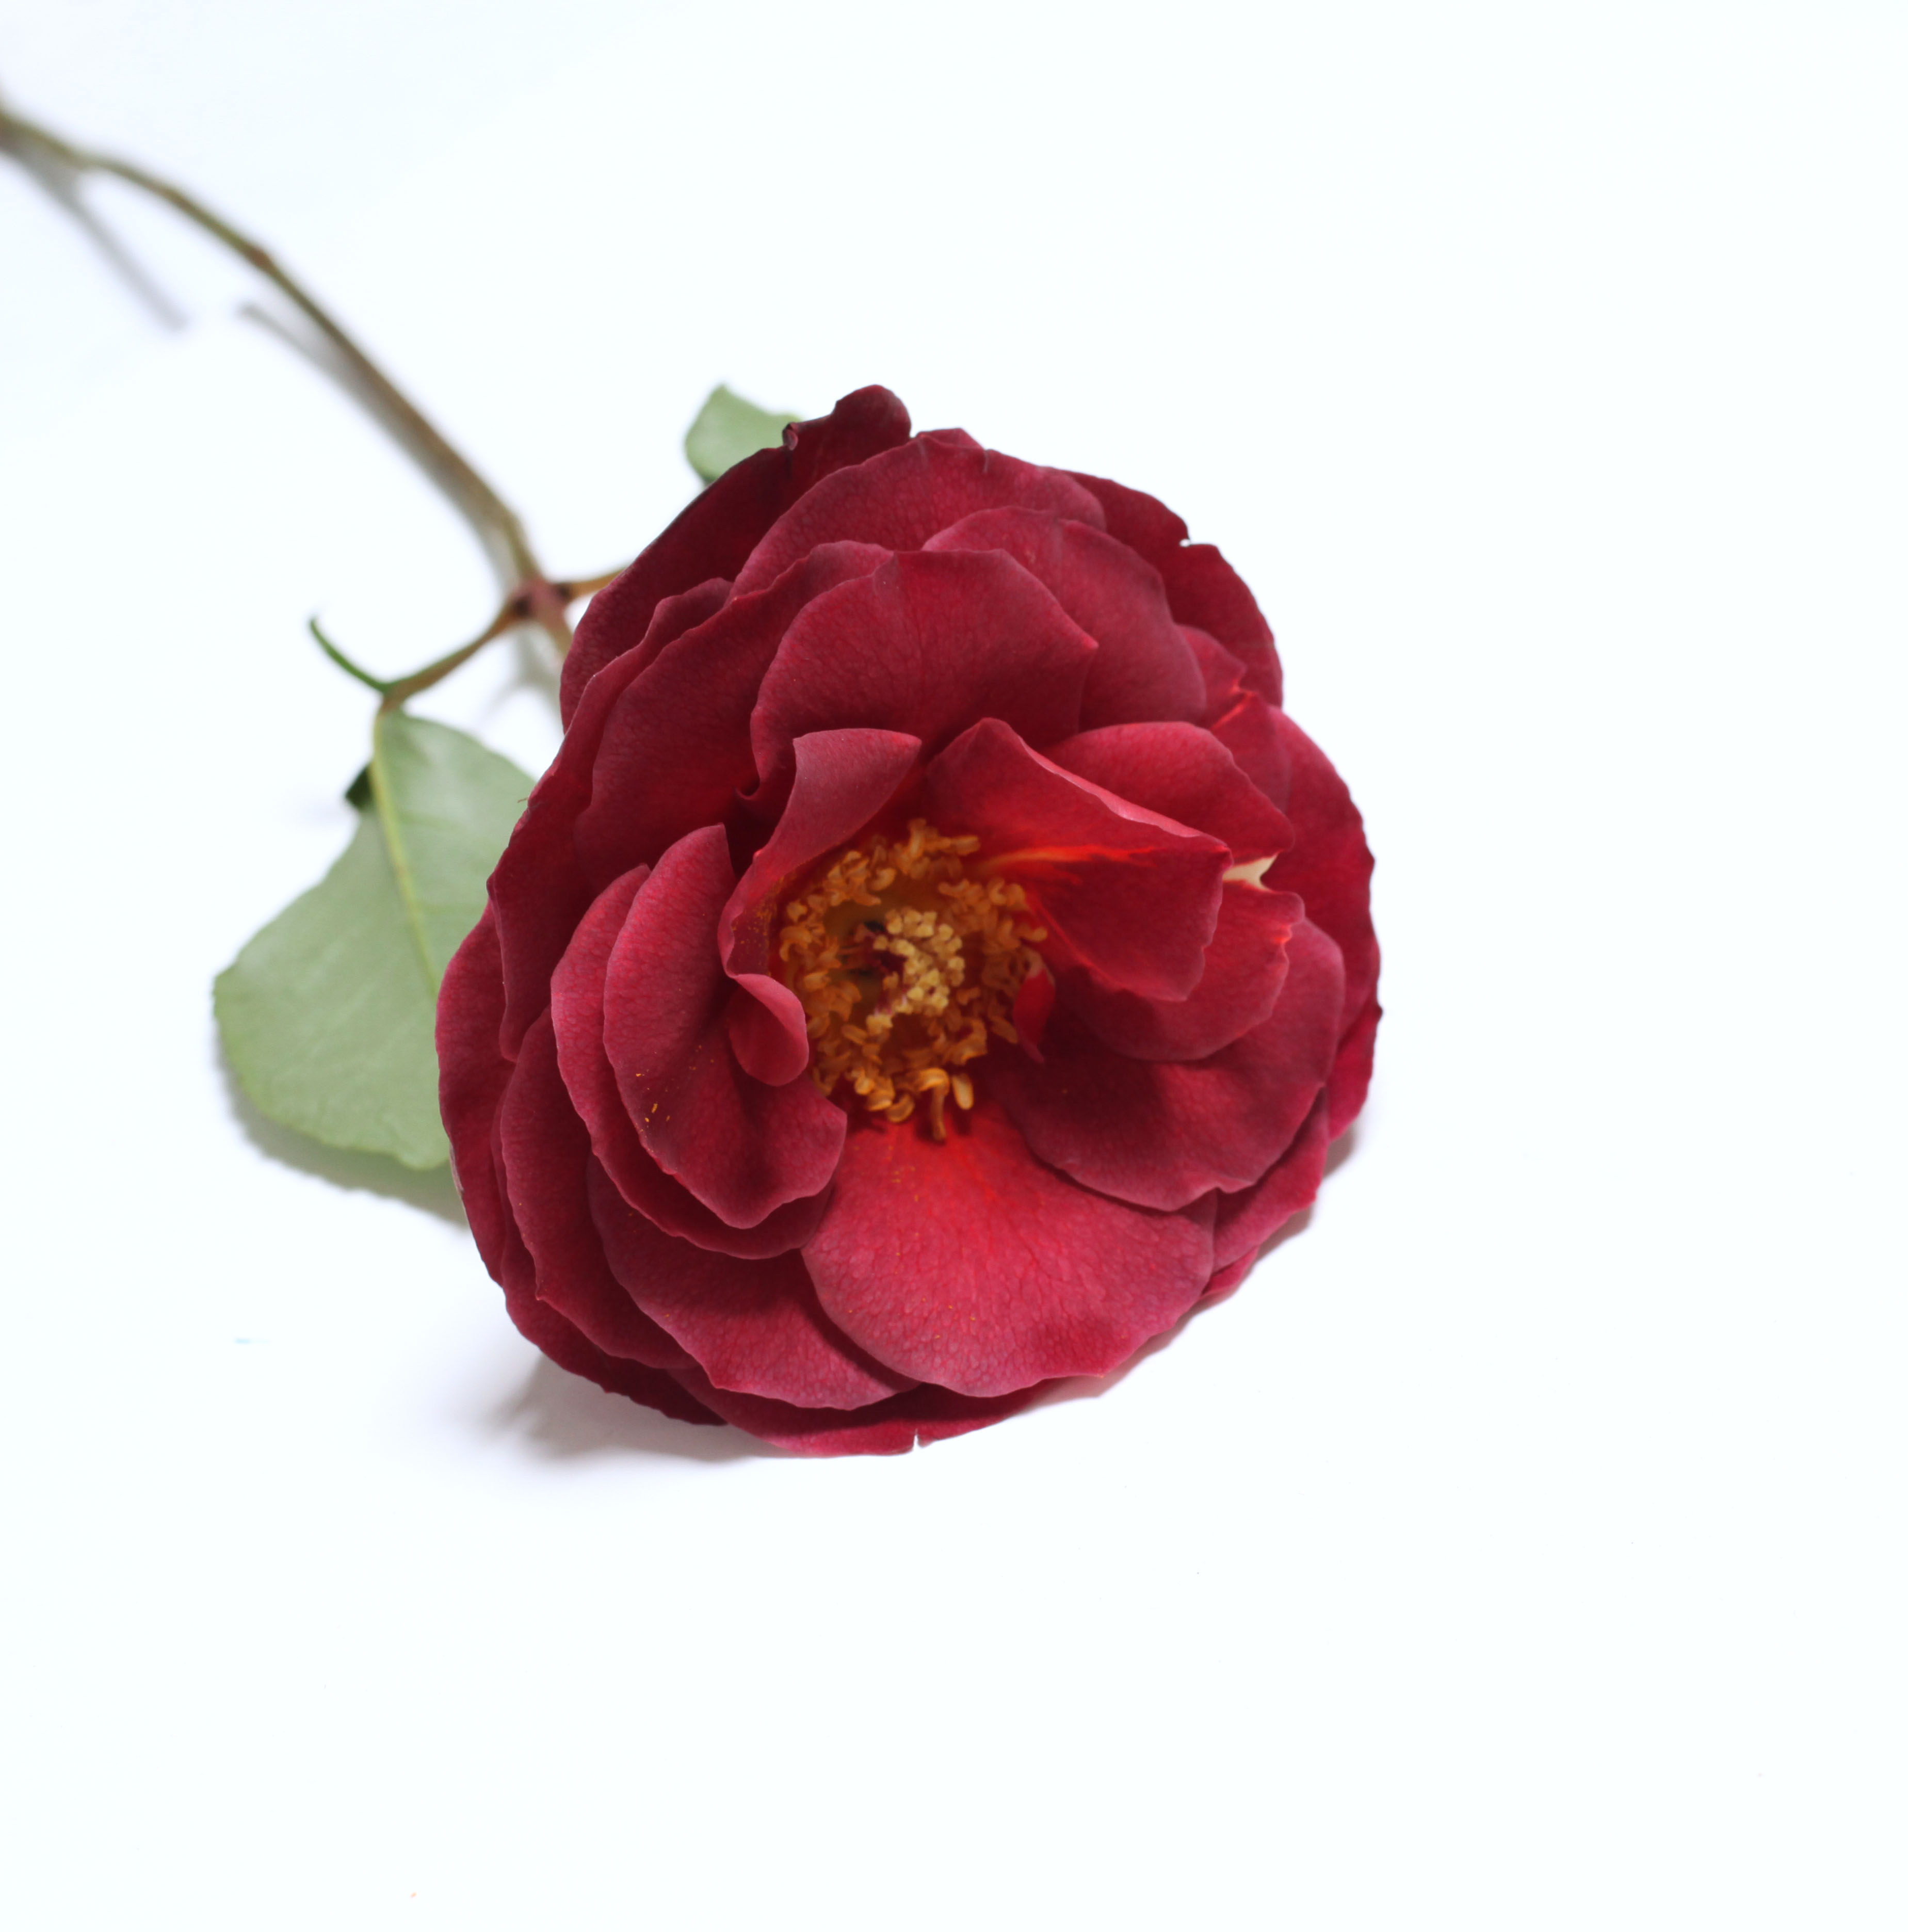 cinnamon spice rose-poppies and posies